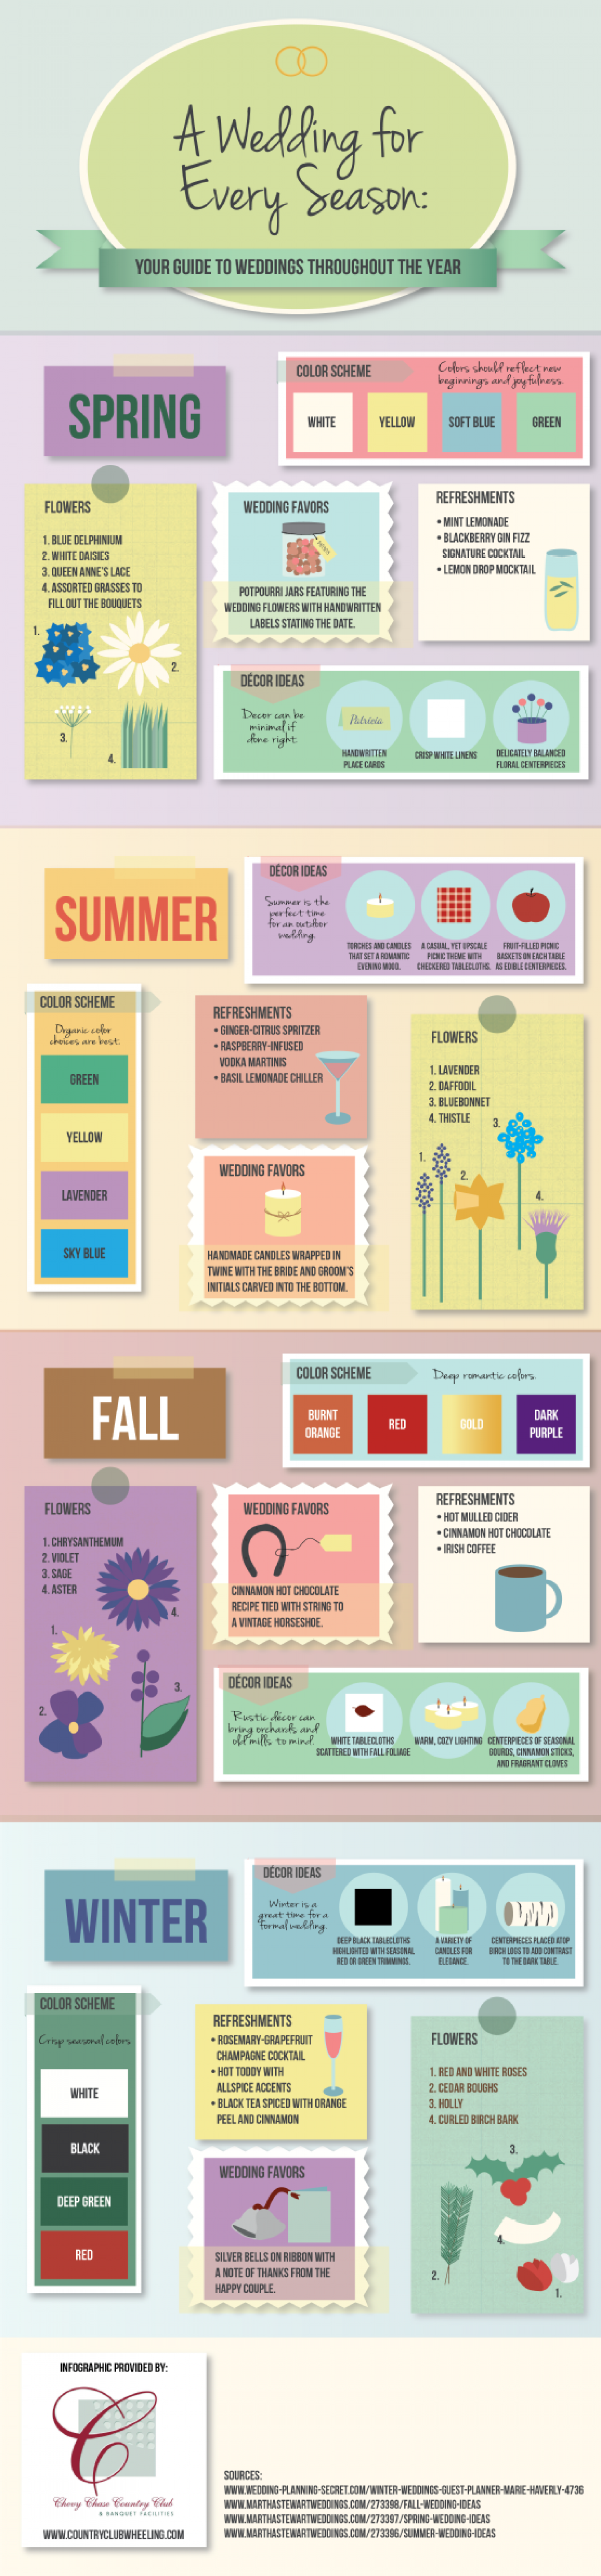 A Wedding for Every Season: Your Guide to Weddings Throughout the Year Infographic